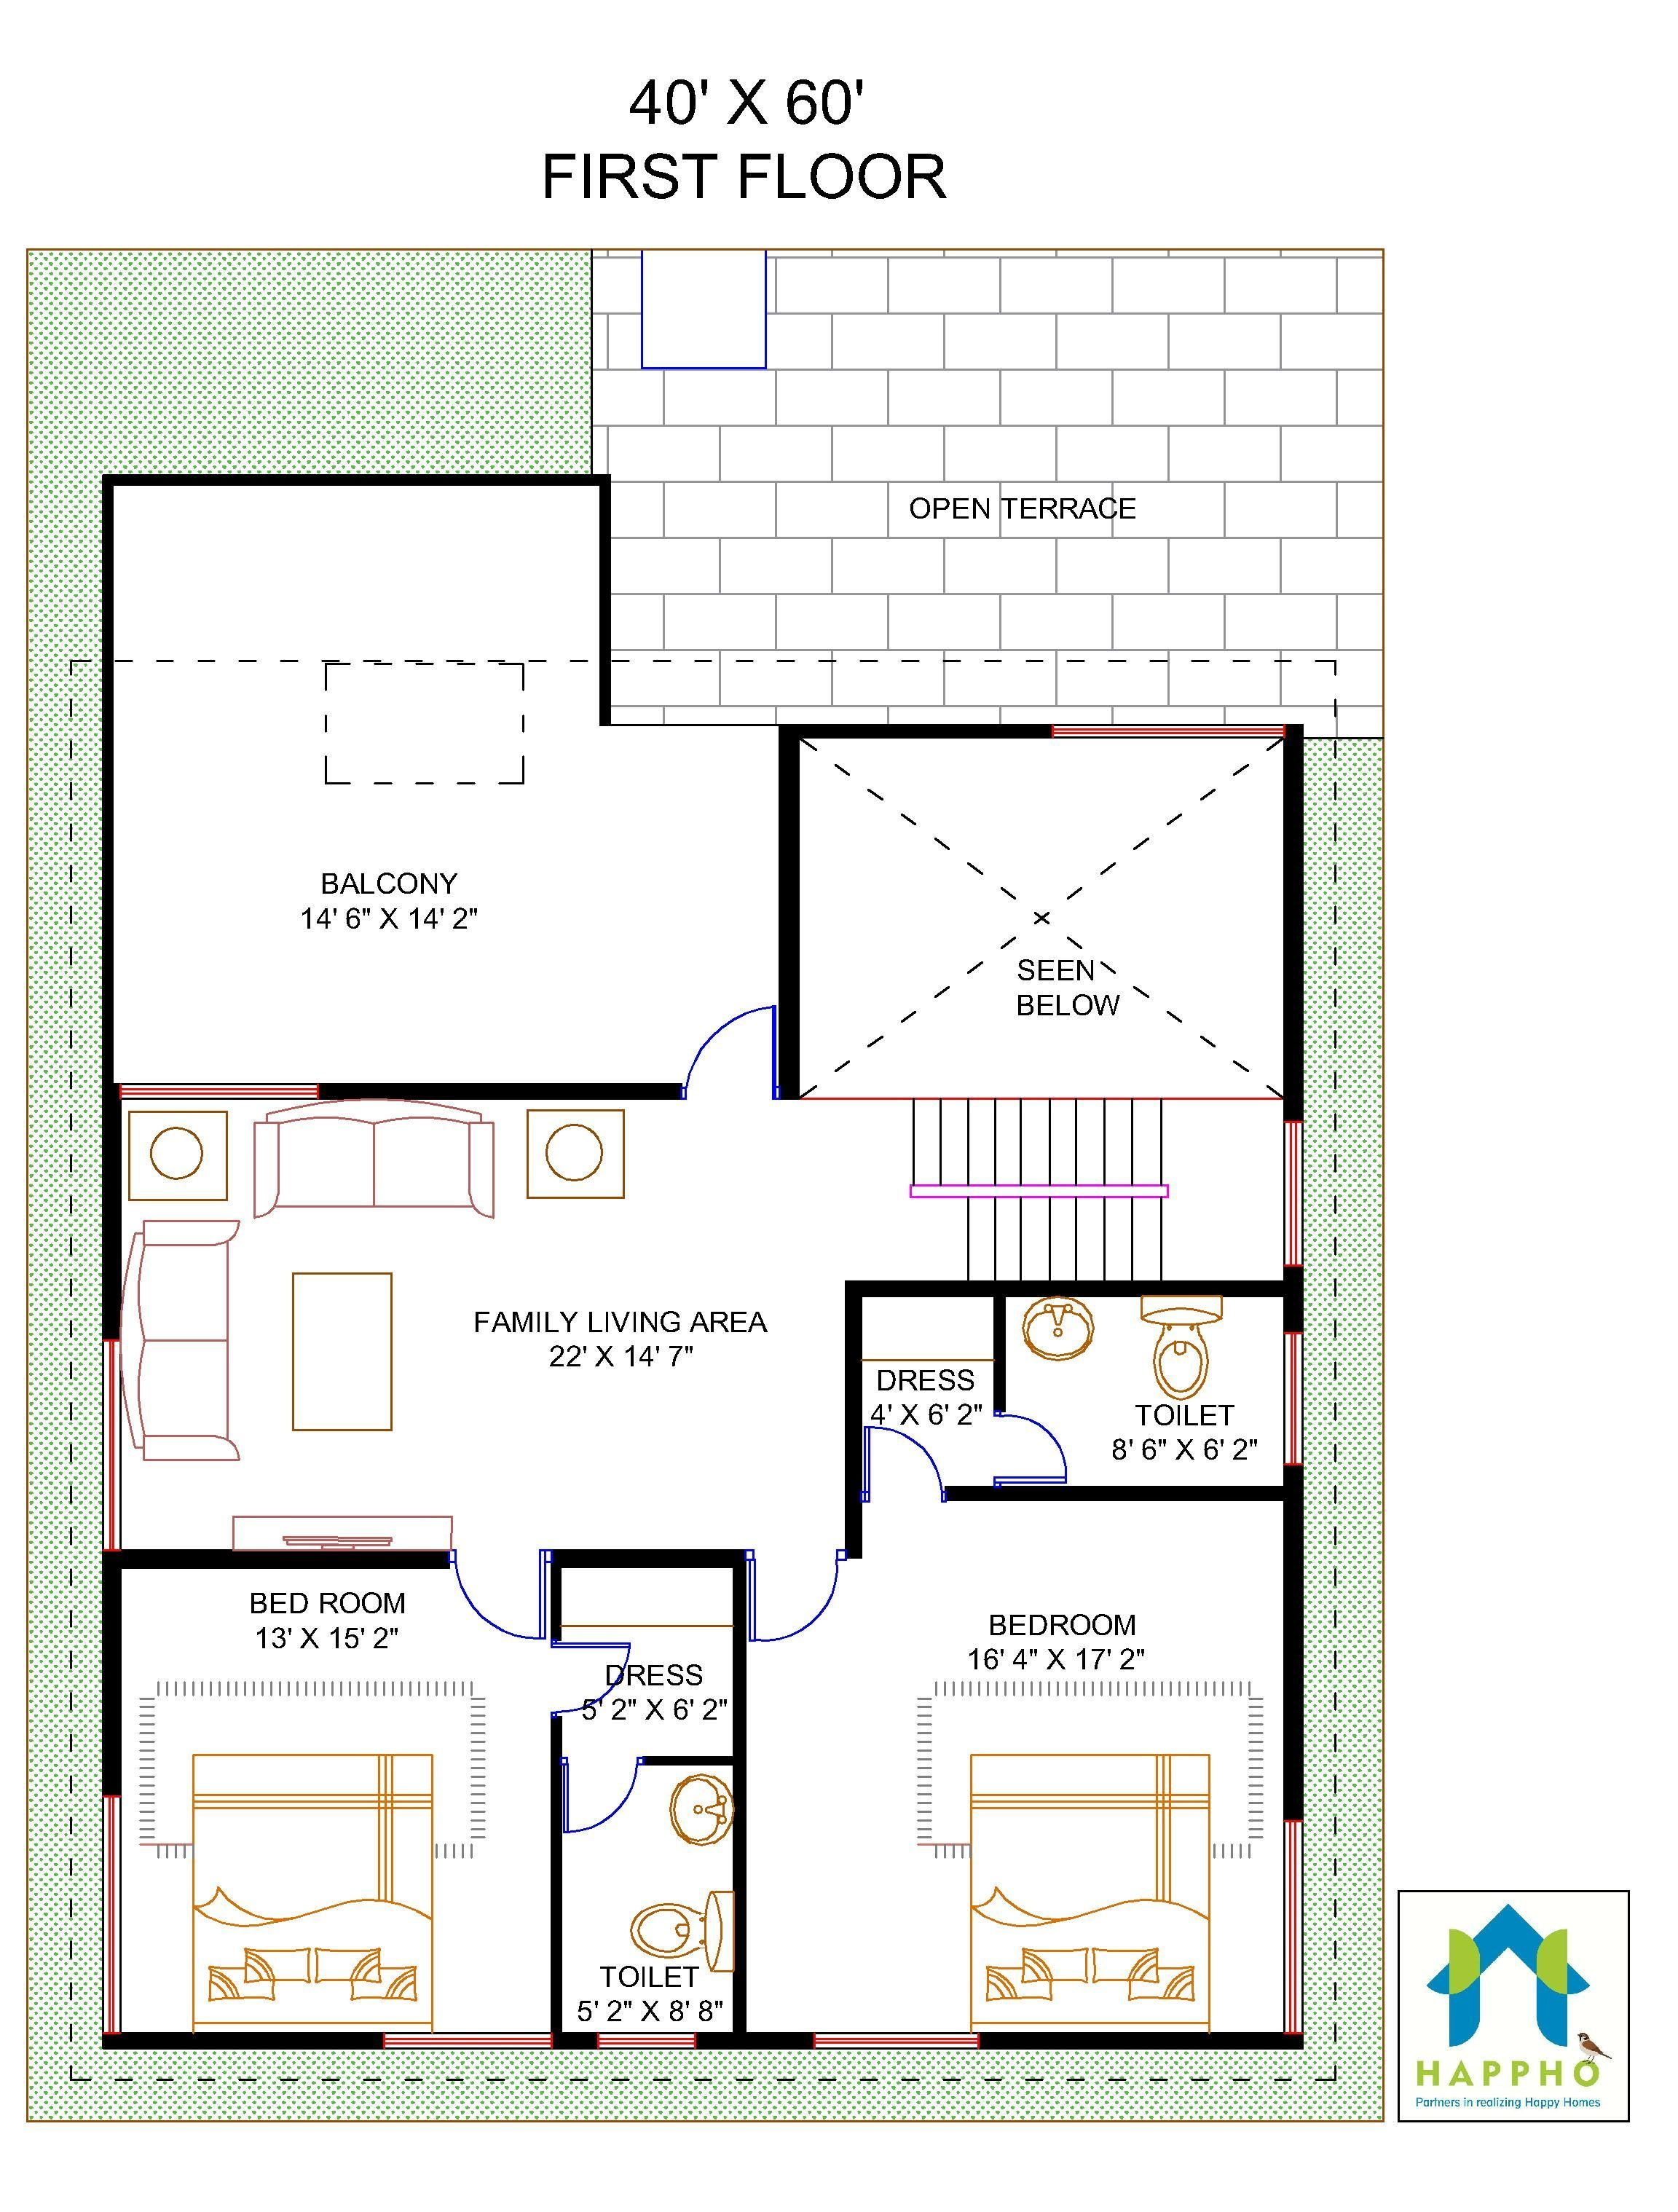 Floor Plan for 40 X 60 Feet Plot   4-BHK (2400 Square Feet ... on single level house plans, 2400 sq ft garden, 2400 sq foot home, family living house plans, craftsman ranch house plans, 1900 sq foot house plans, 24 foot house plans, 2400 sq ft home building designs, slab house plans, 4 bedroom house plans, square foundation house plans, 640 sq ft. house plans, southern house plans, 3 beds house plans, two story house plans, 2 beds house plans, vinyl siding house plans, range house plans, 2400 sf house plans,